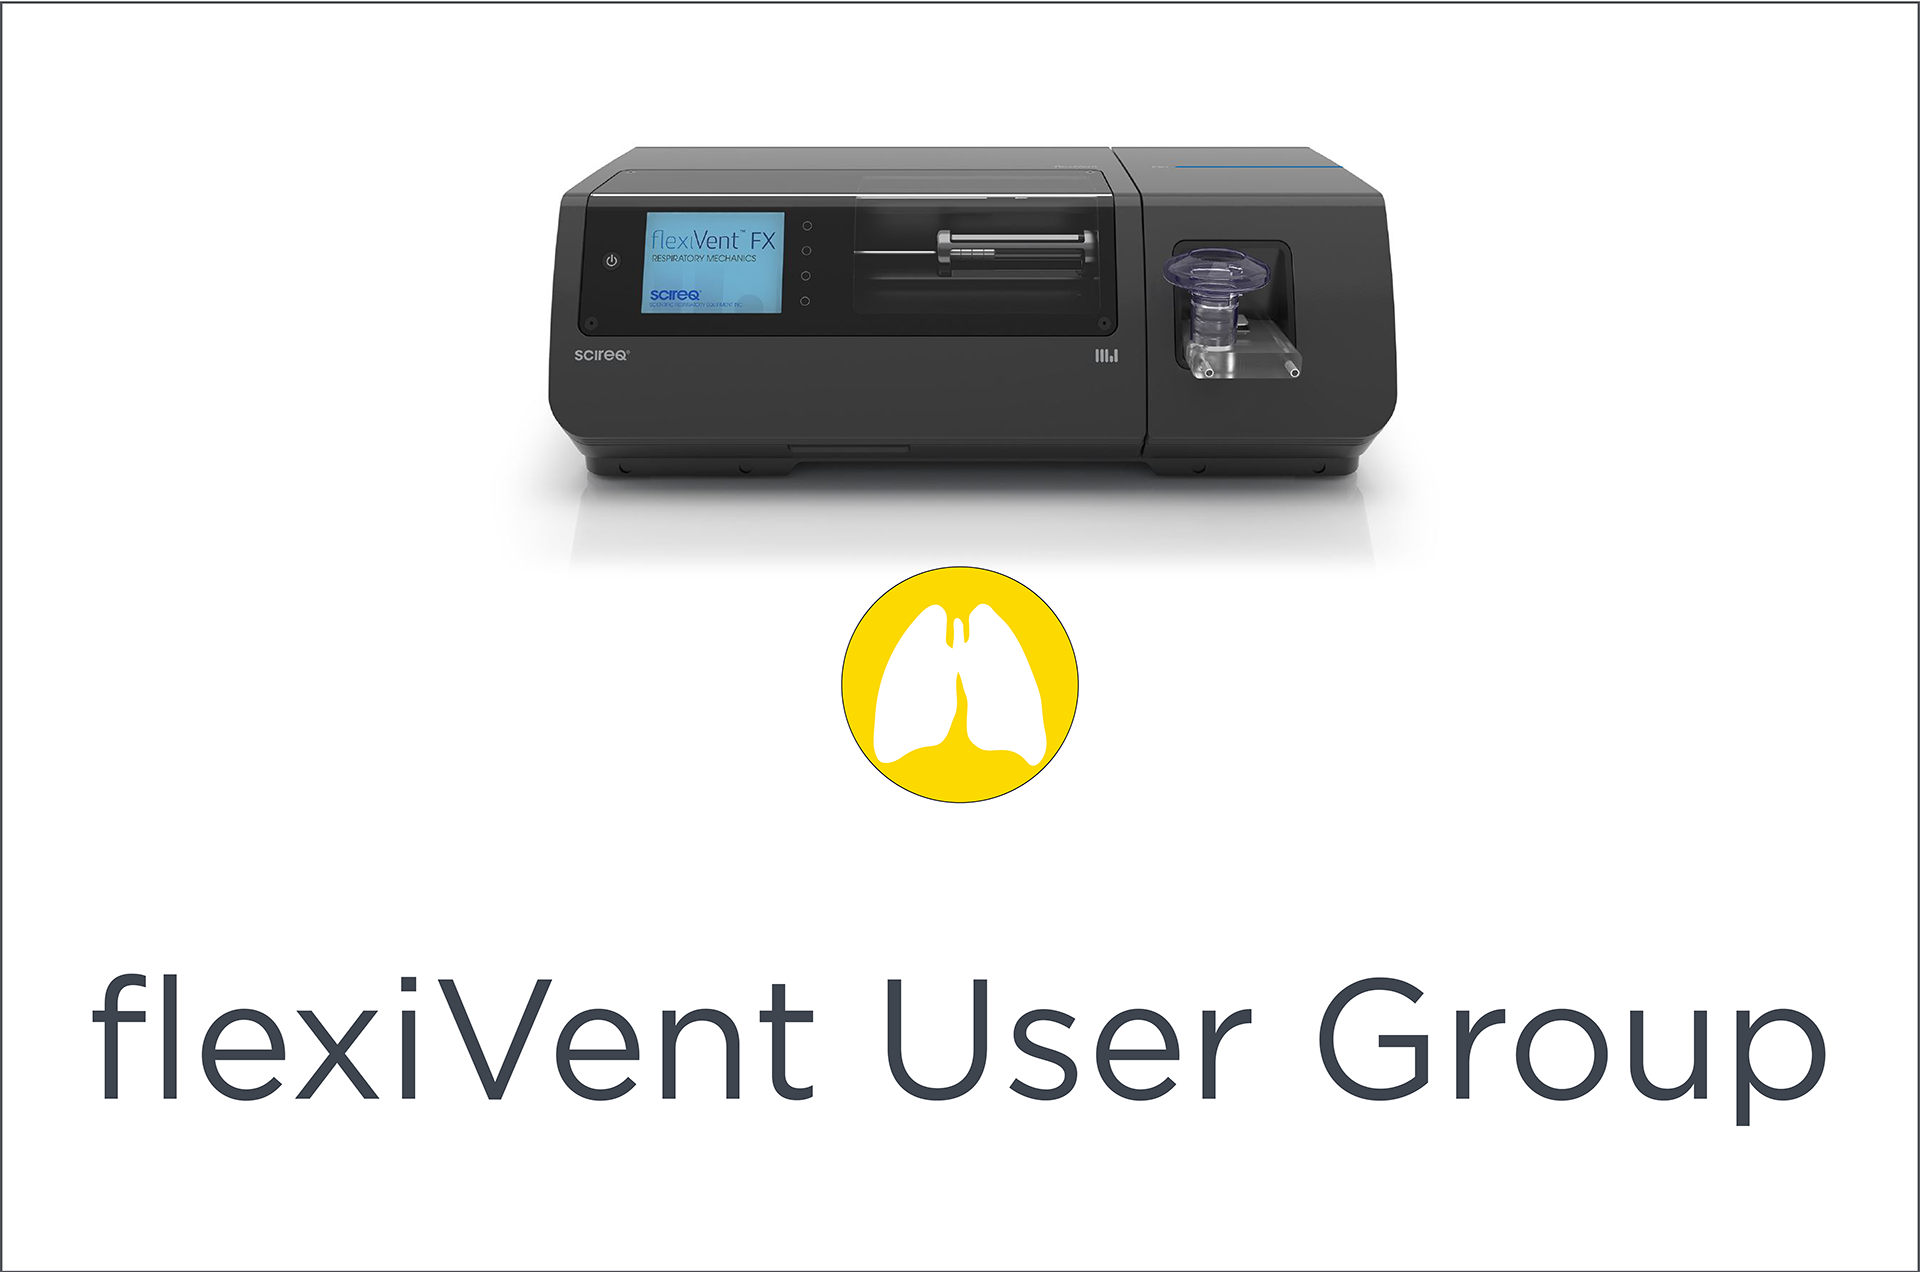 flexiVent User Group Meeting 2018 flexiVent user group meeting 1